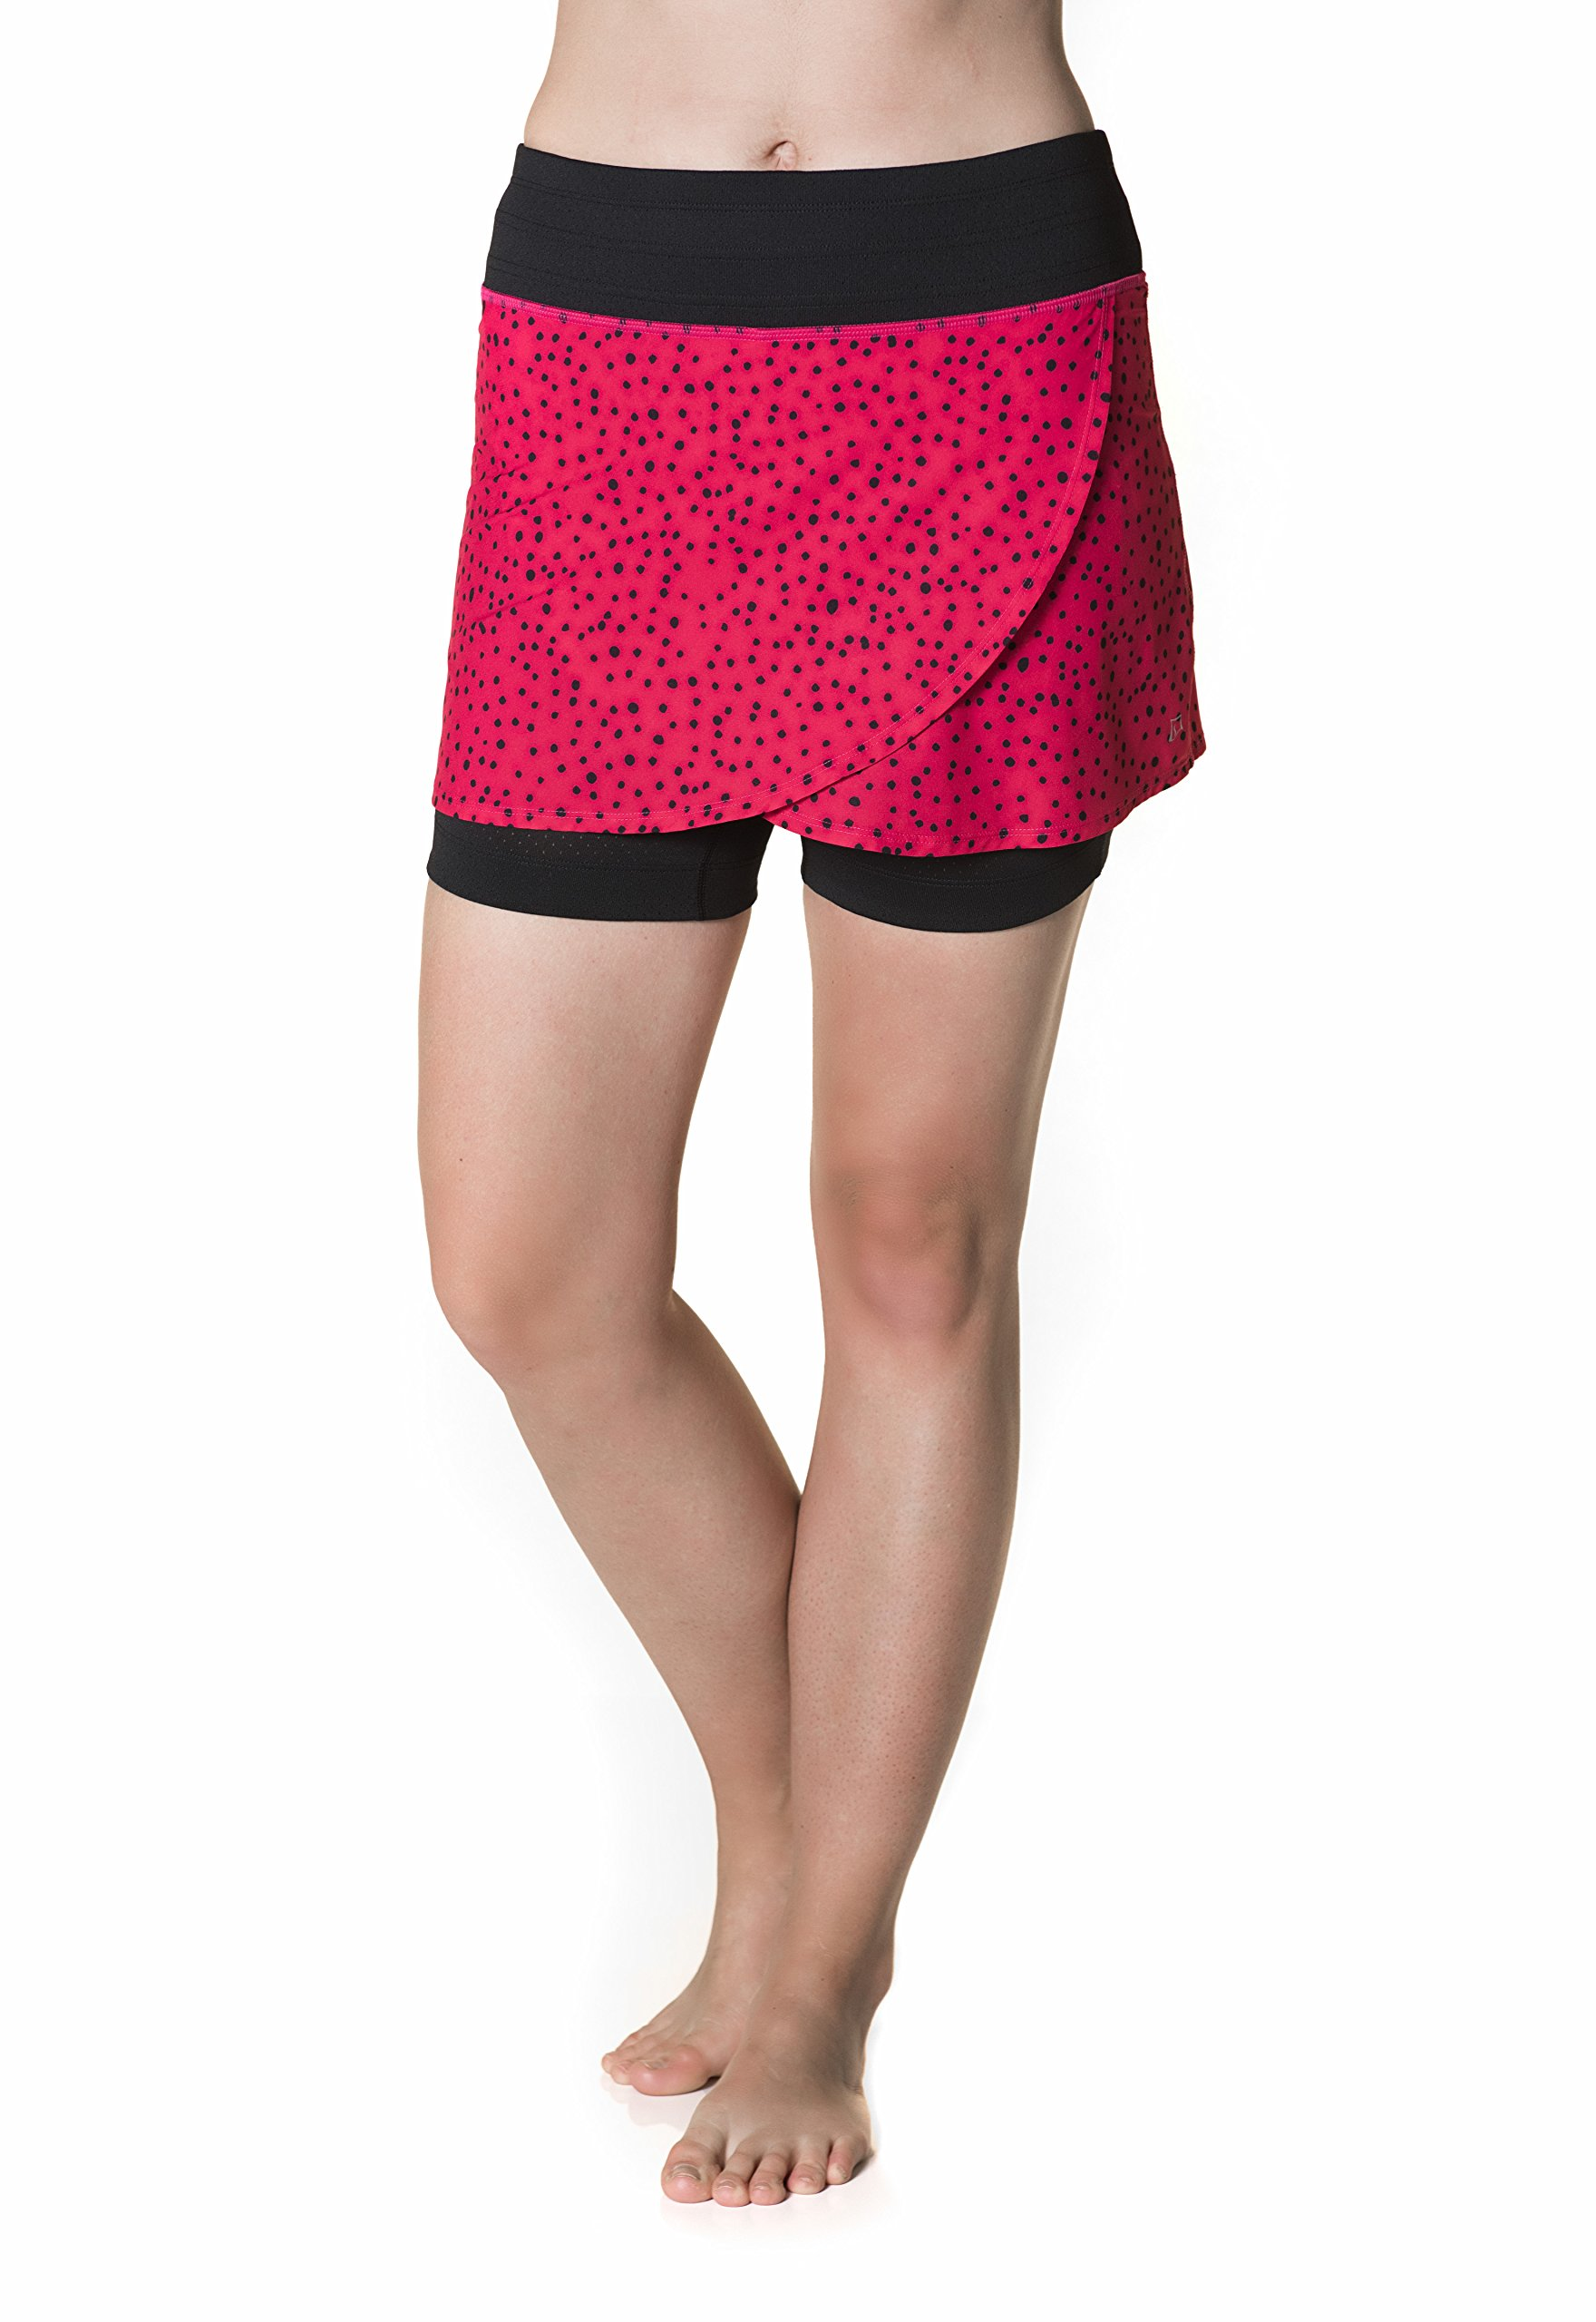 Skirt Sports Women's Hover Skirt, Bubbly Print, X-Large by Skirt Sports